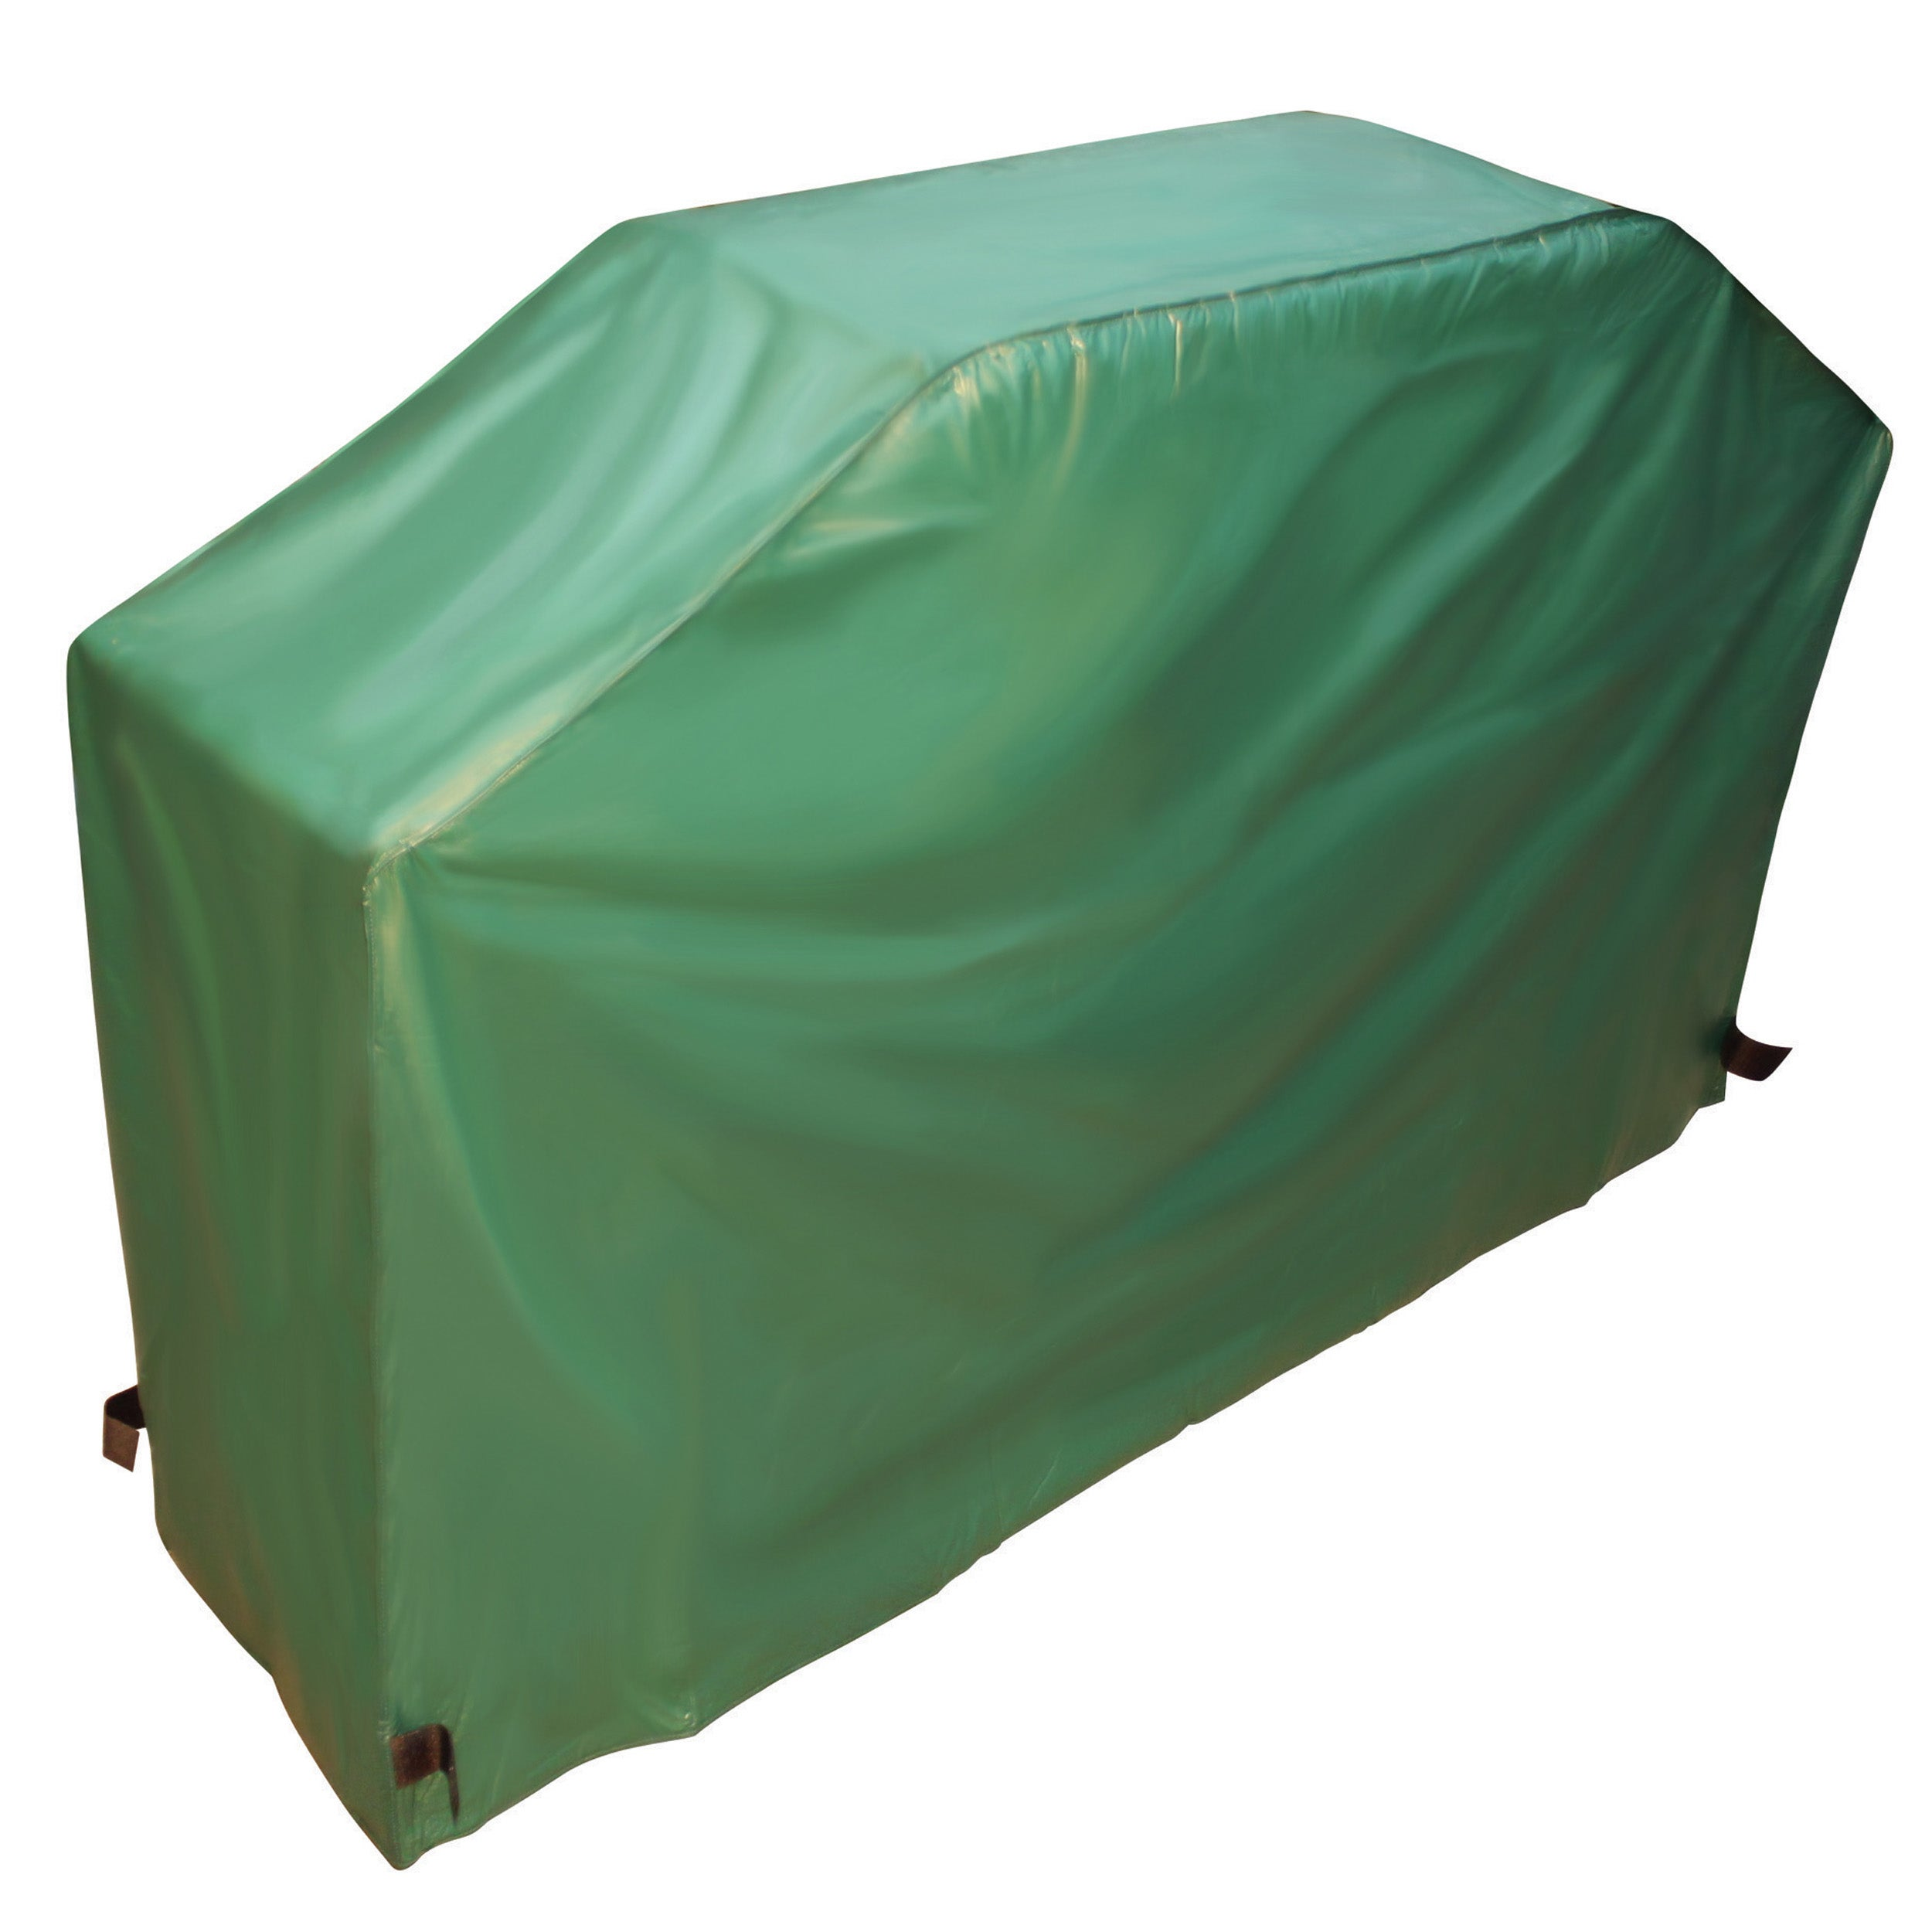 Mr. Bar-B-Q Deluxe 68-inch Grill Cover